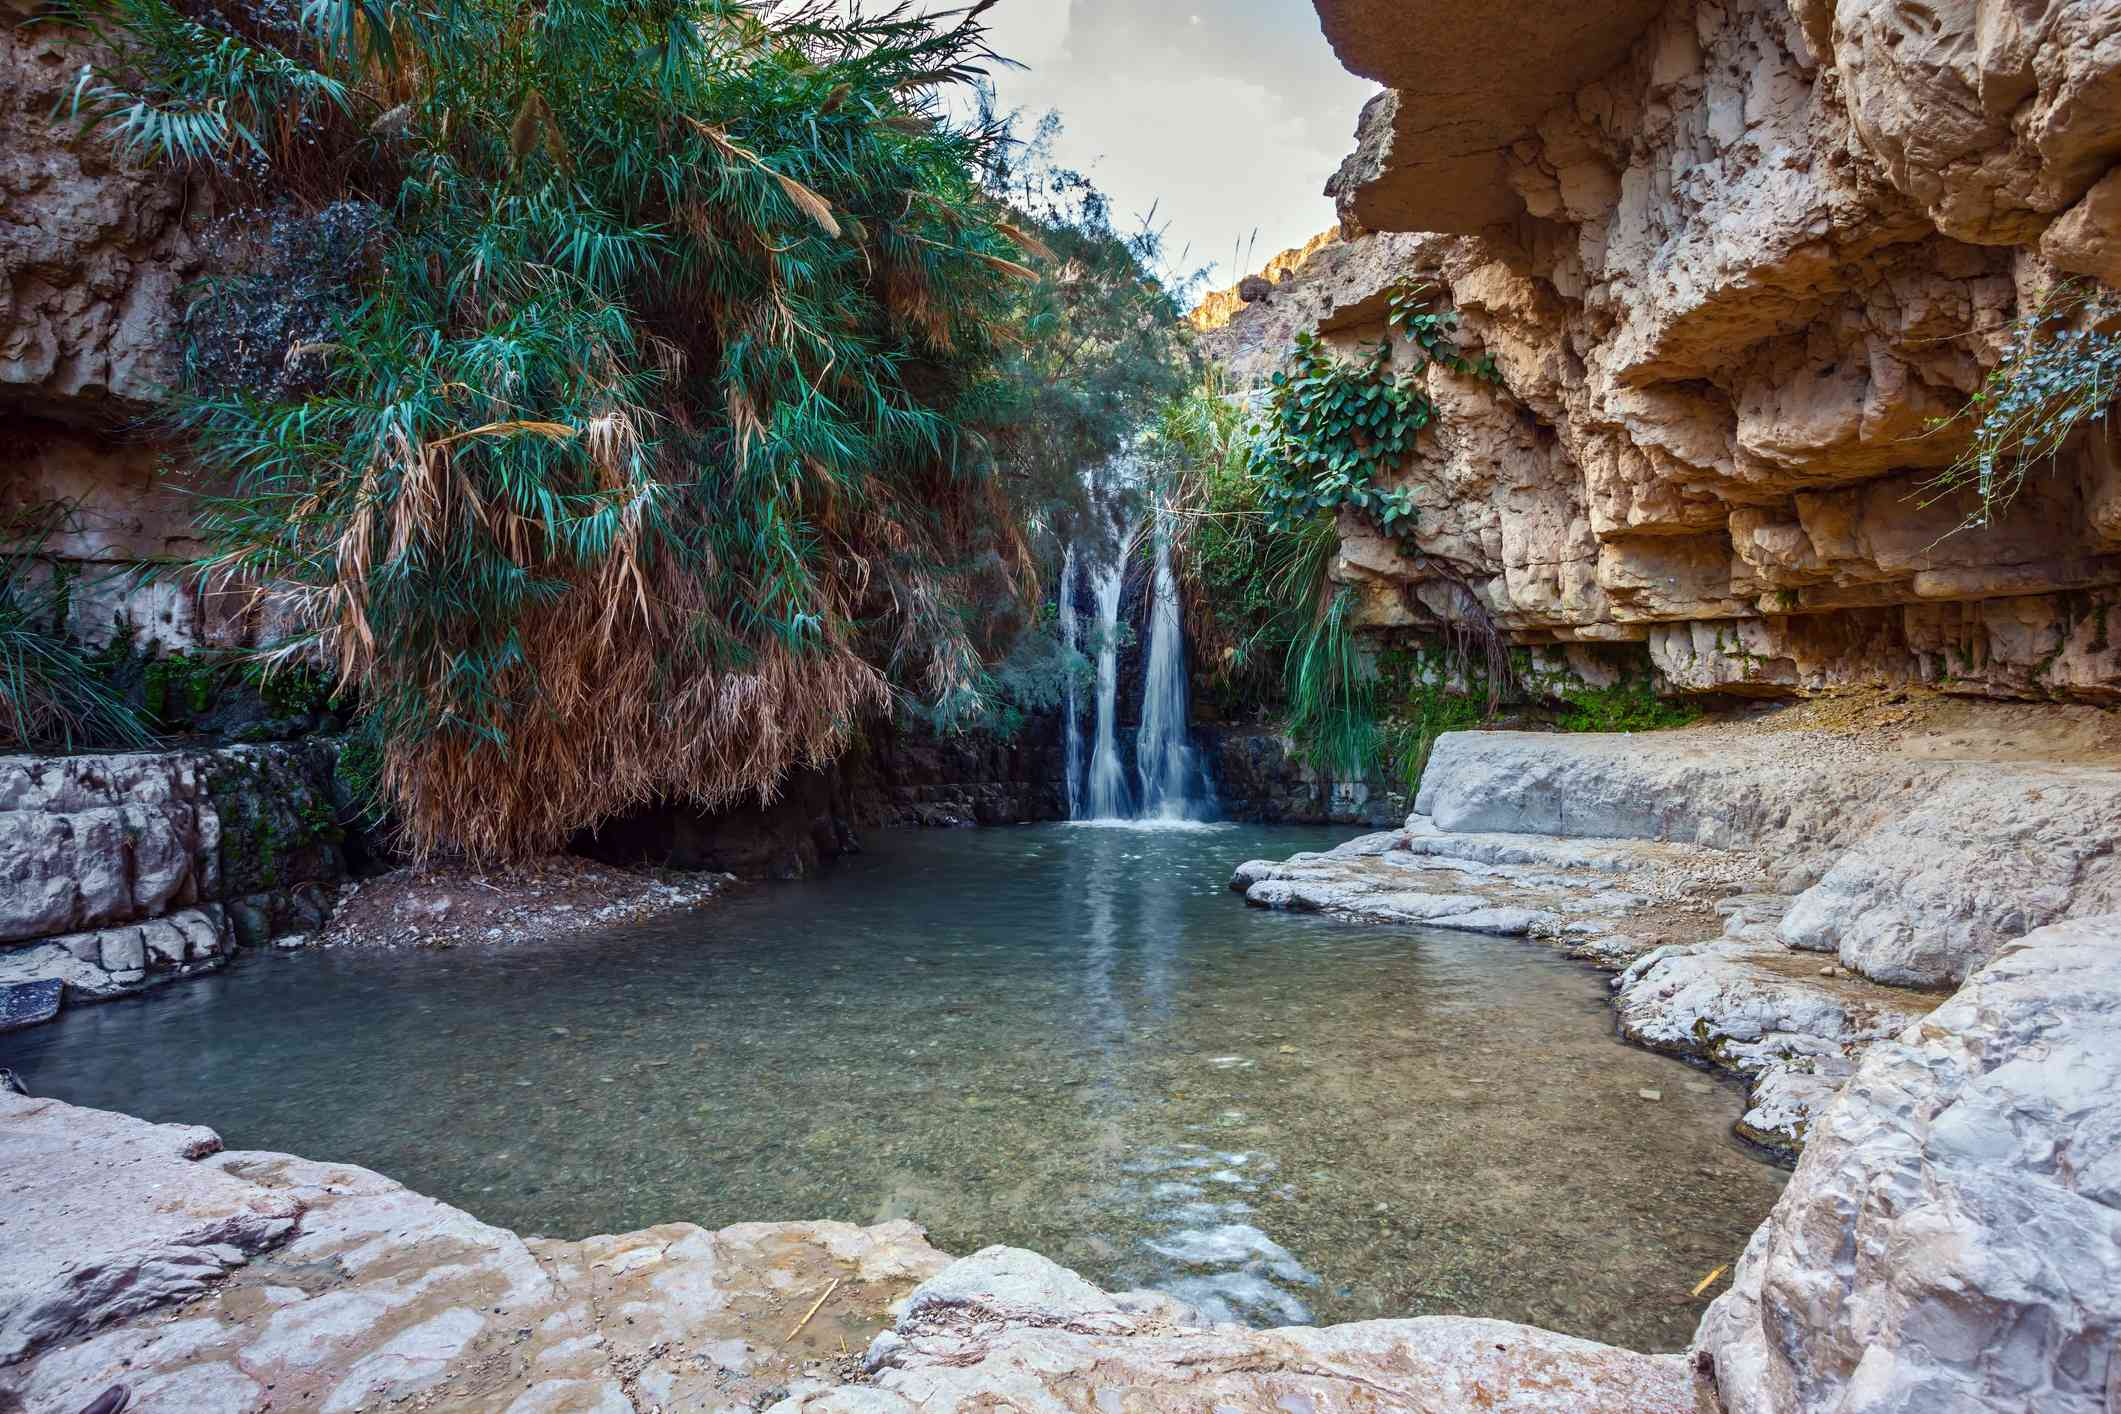 pond with clear water and a waterfall surrounded by rock formations and palm trees located in Ein Gedi national park, Israel